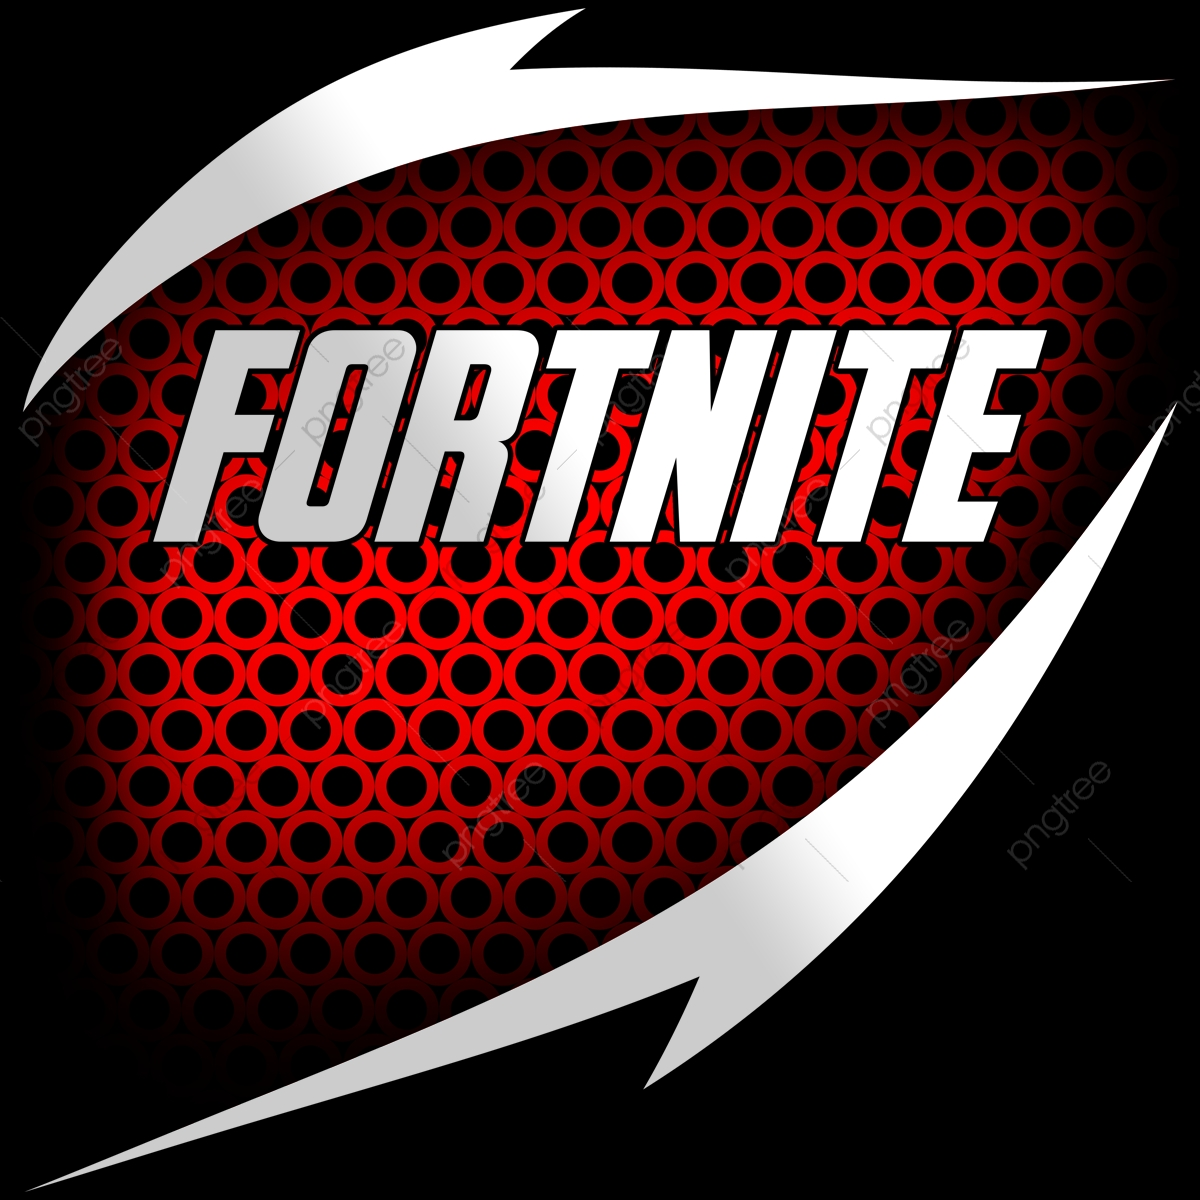 Fortnite Png Fortnite Png Transparent Clipart Image And Psd File For Free Download Thousands of new fortnite png image resources are added every day. https pngtree com freepng fortnite png 3996336 html